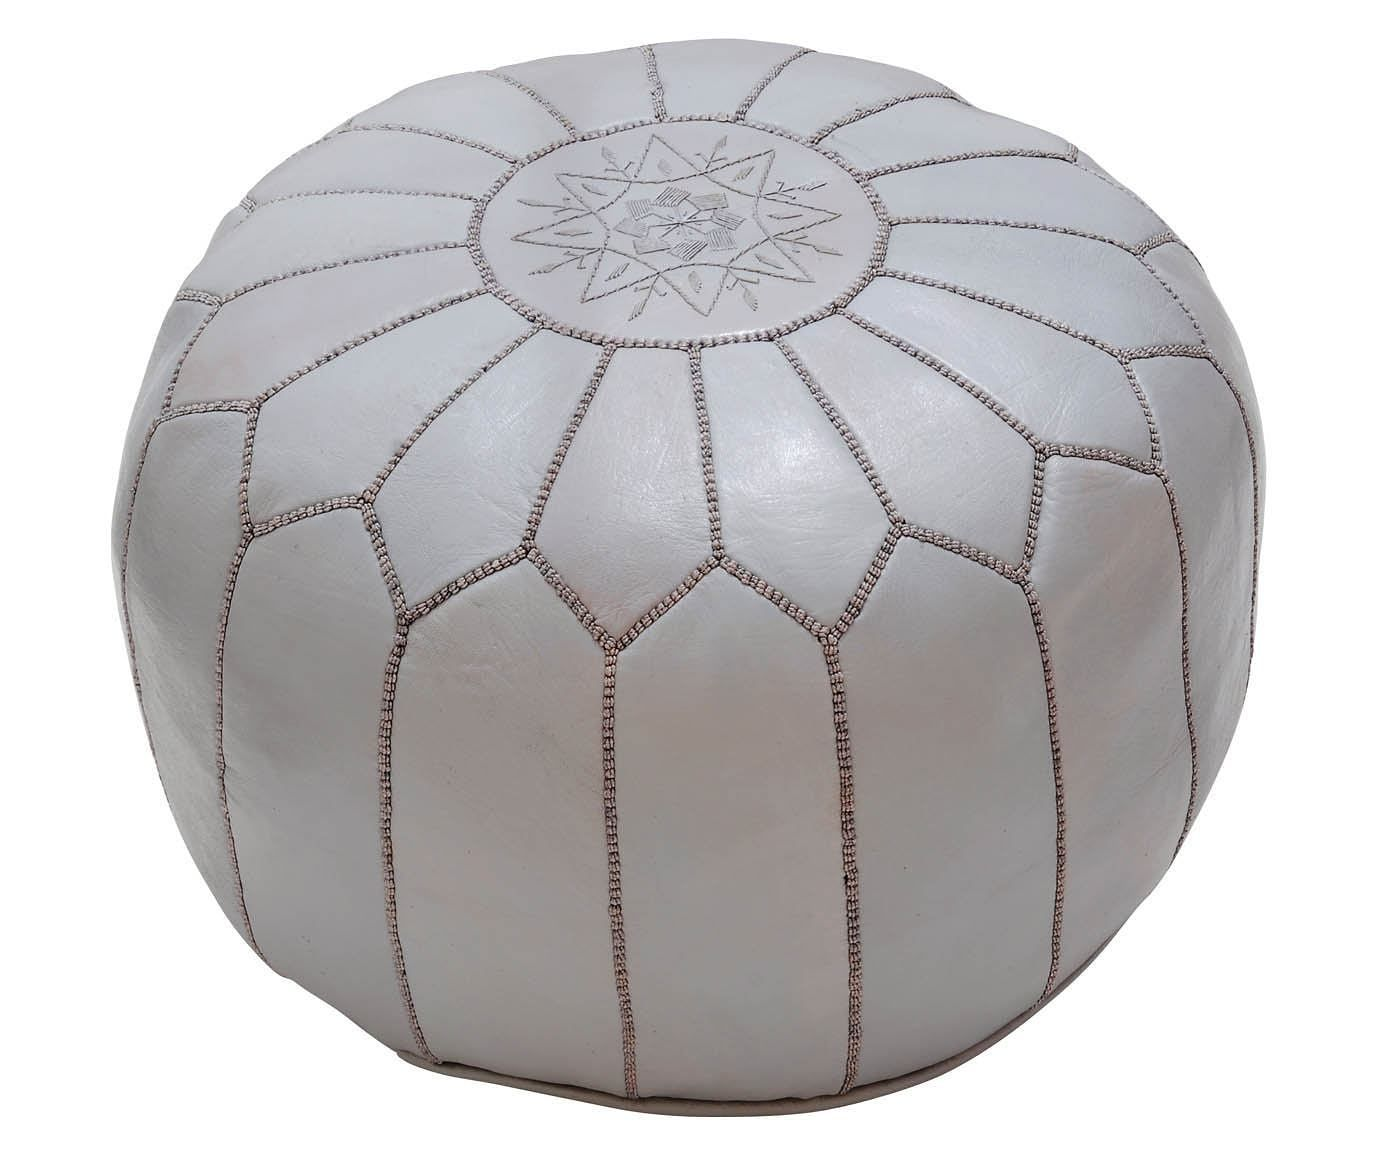 Leder Pouf handgefertigter leder pouf tassira for the home